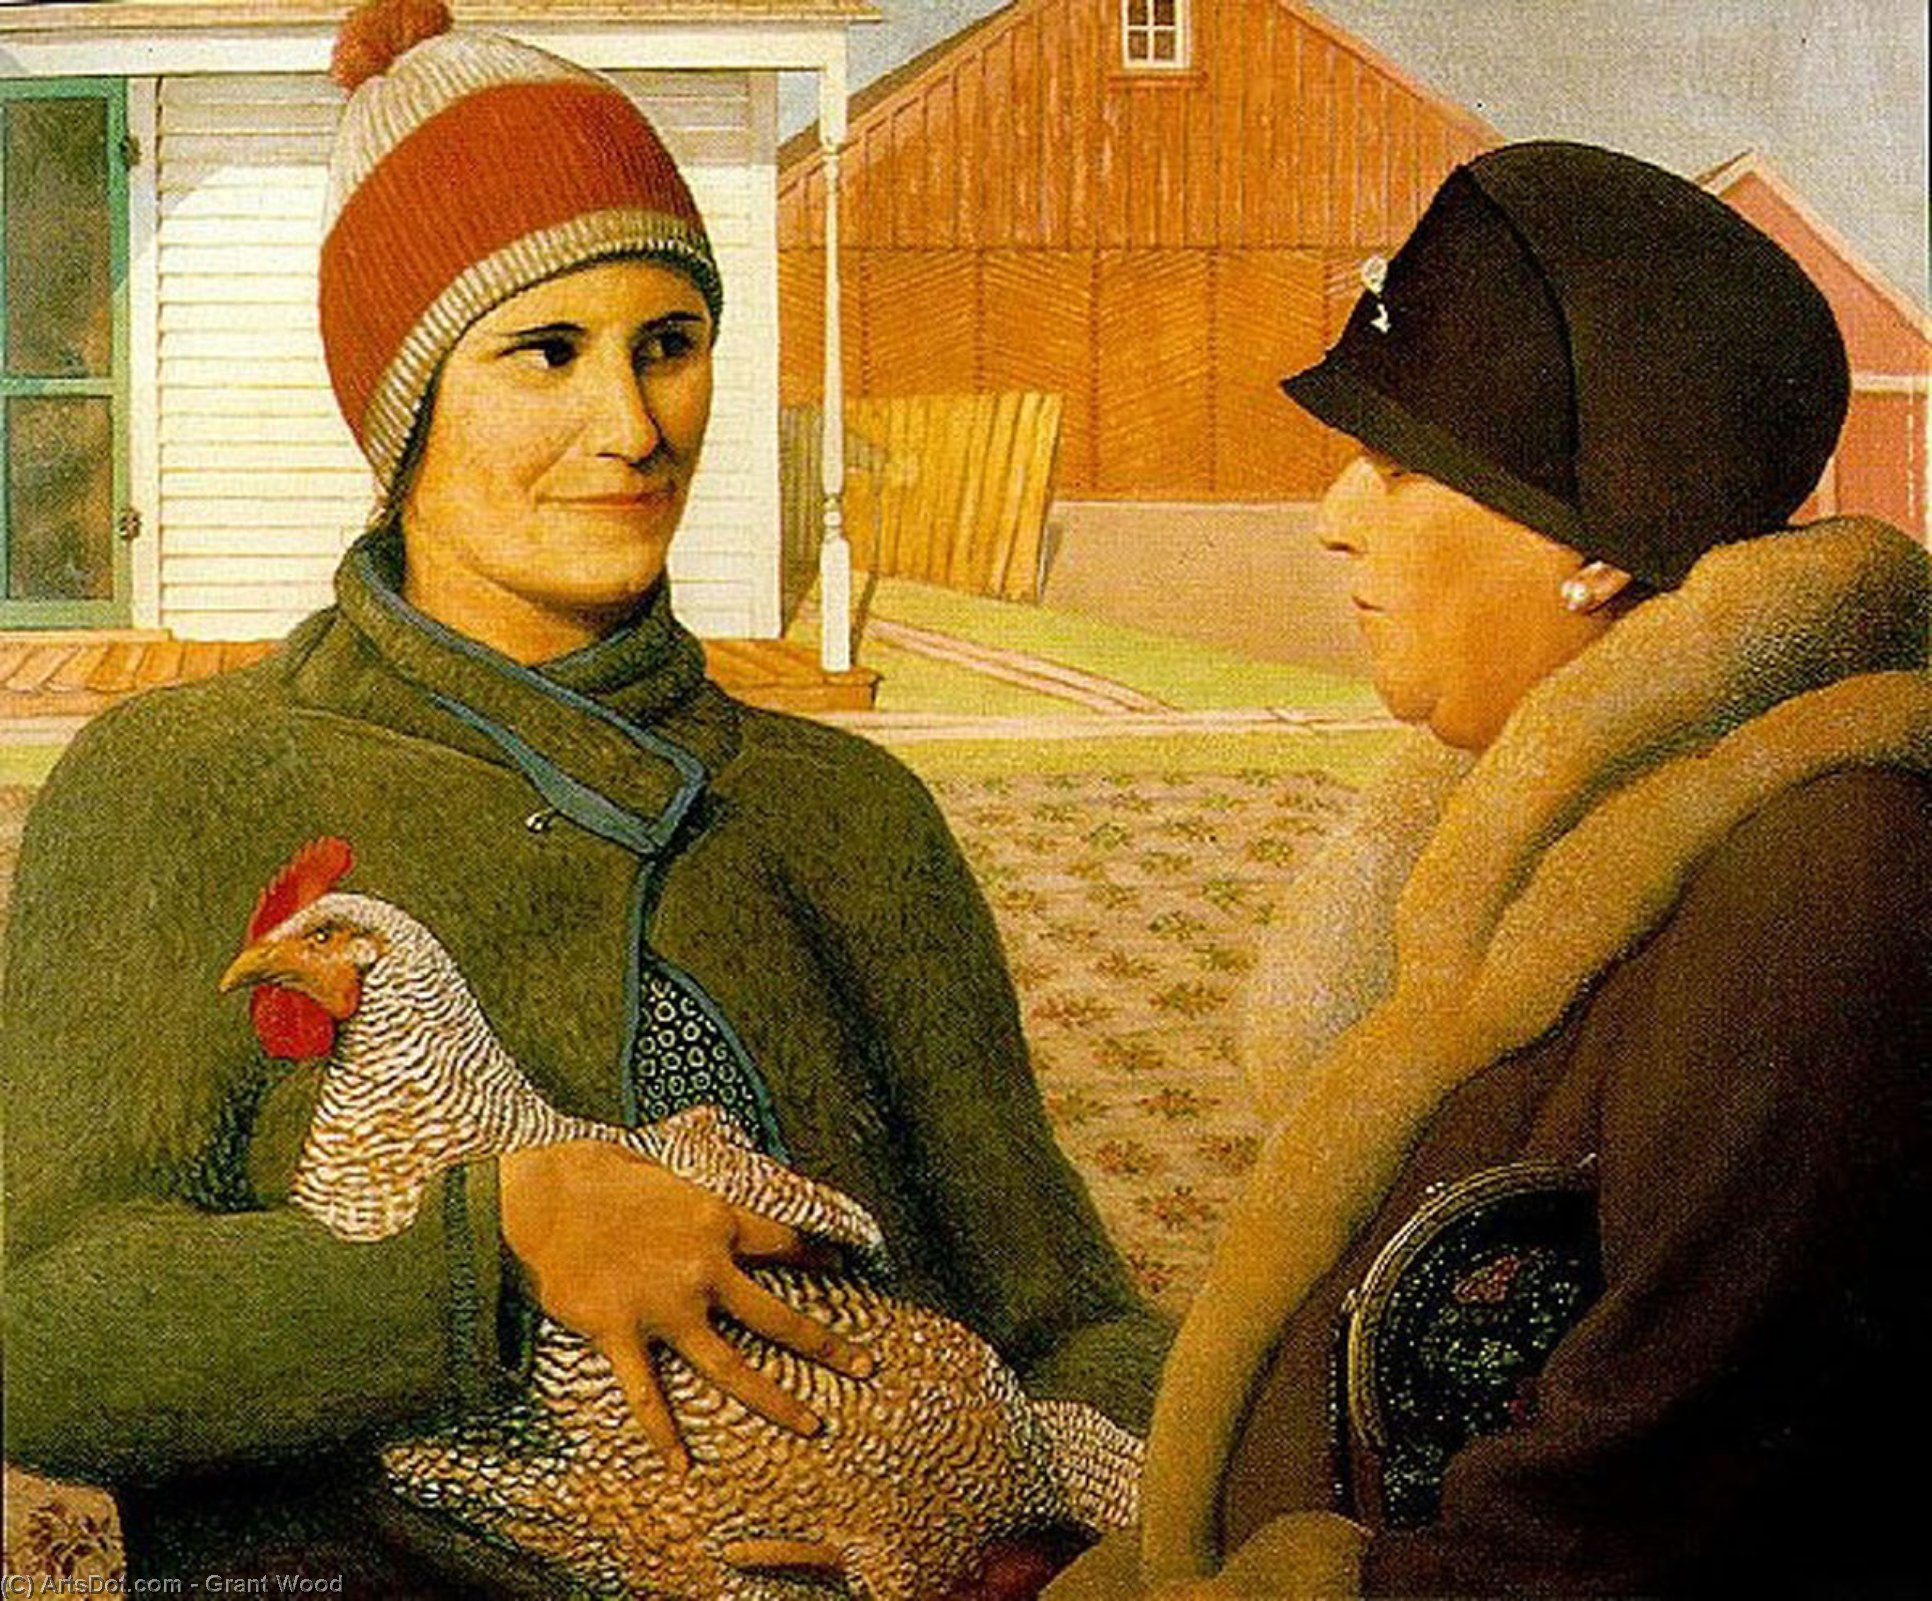 Wikioo.org - The Encyclopedia of Fine Arts - Painting, Artwork by Grant Wood - The Appraisal